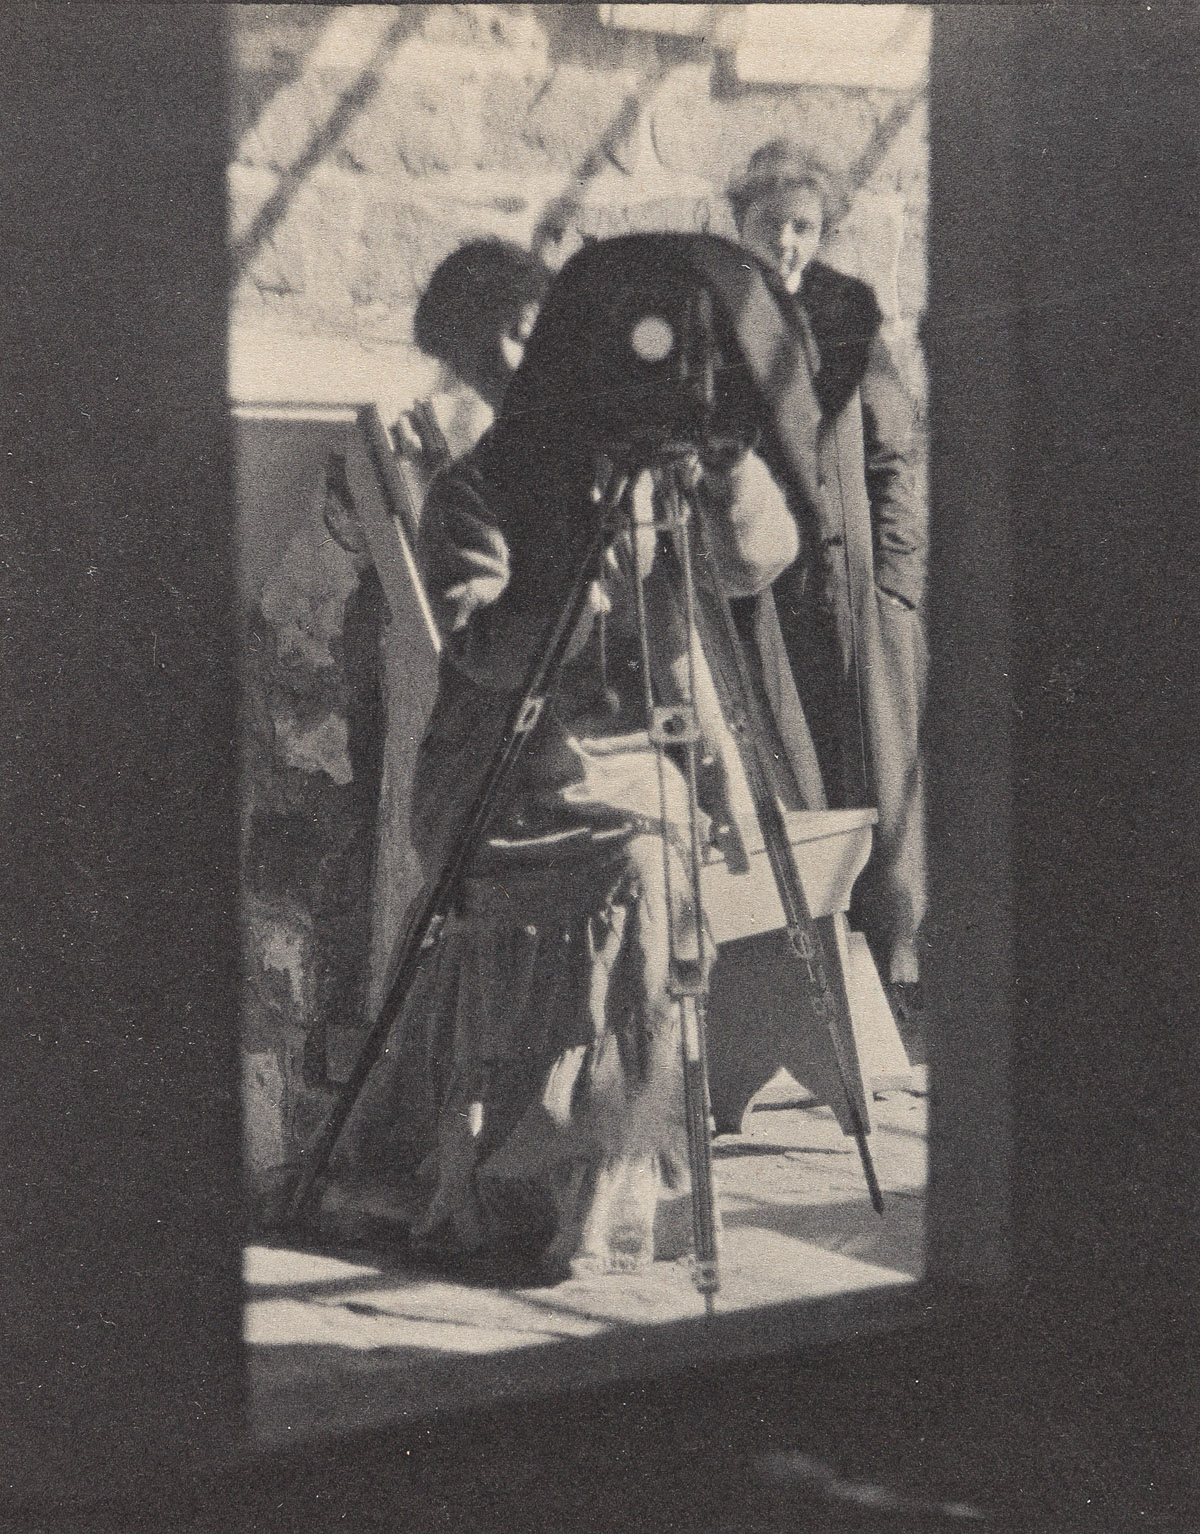 KARL STRUSS (1886-1981) Woman photographer in a class with Clarence White.